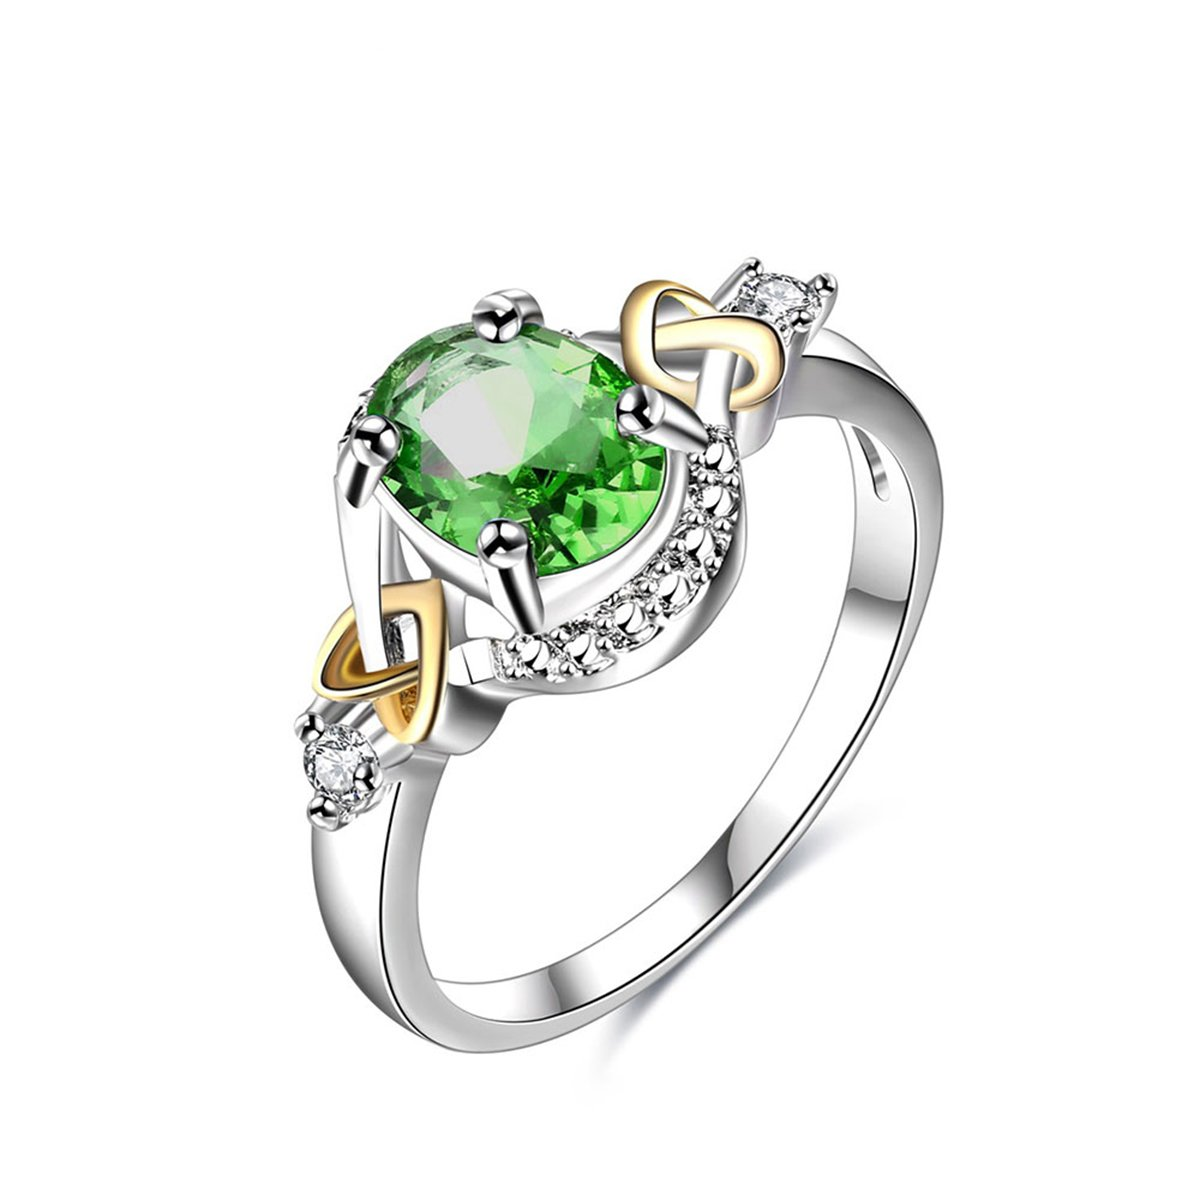 Womens Jewelry Circular Bead Cross Heart Green Gemstone White Cubic zirconia Diamond Three Tone Silver Plate Gold Plate Wedding Ring Winter.Z